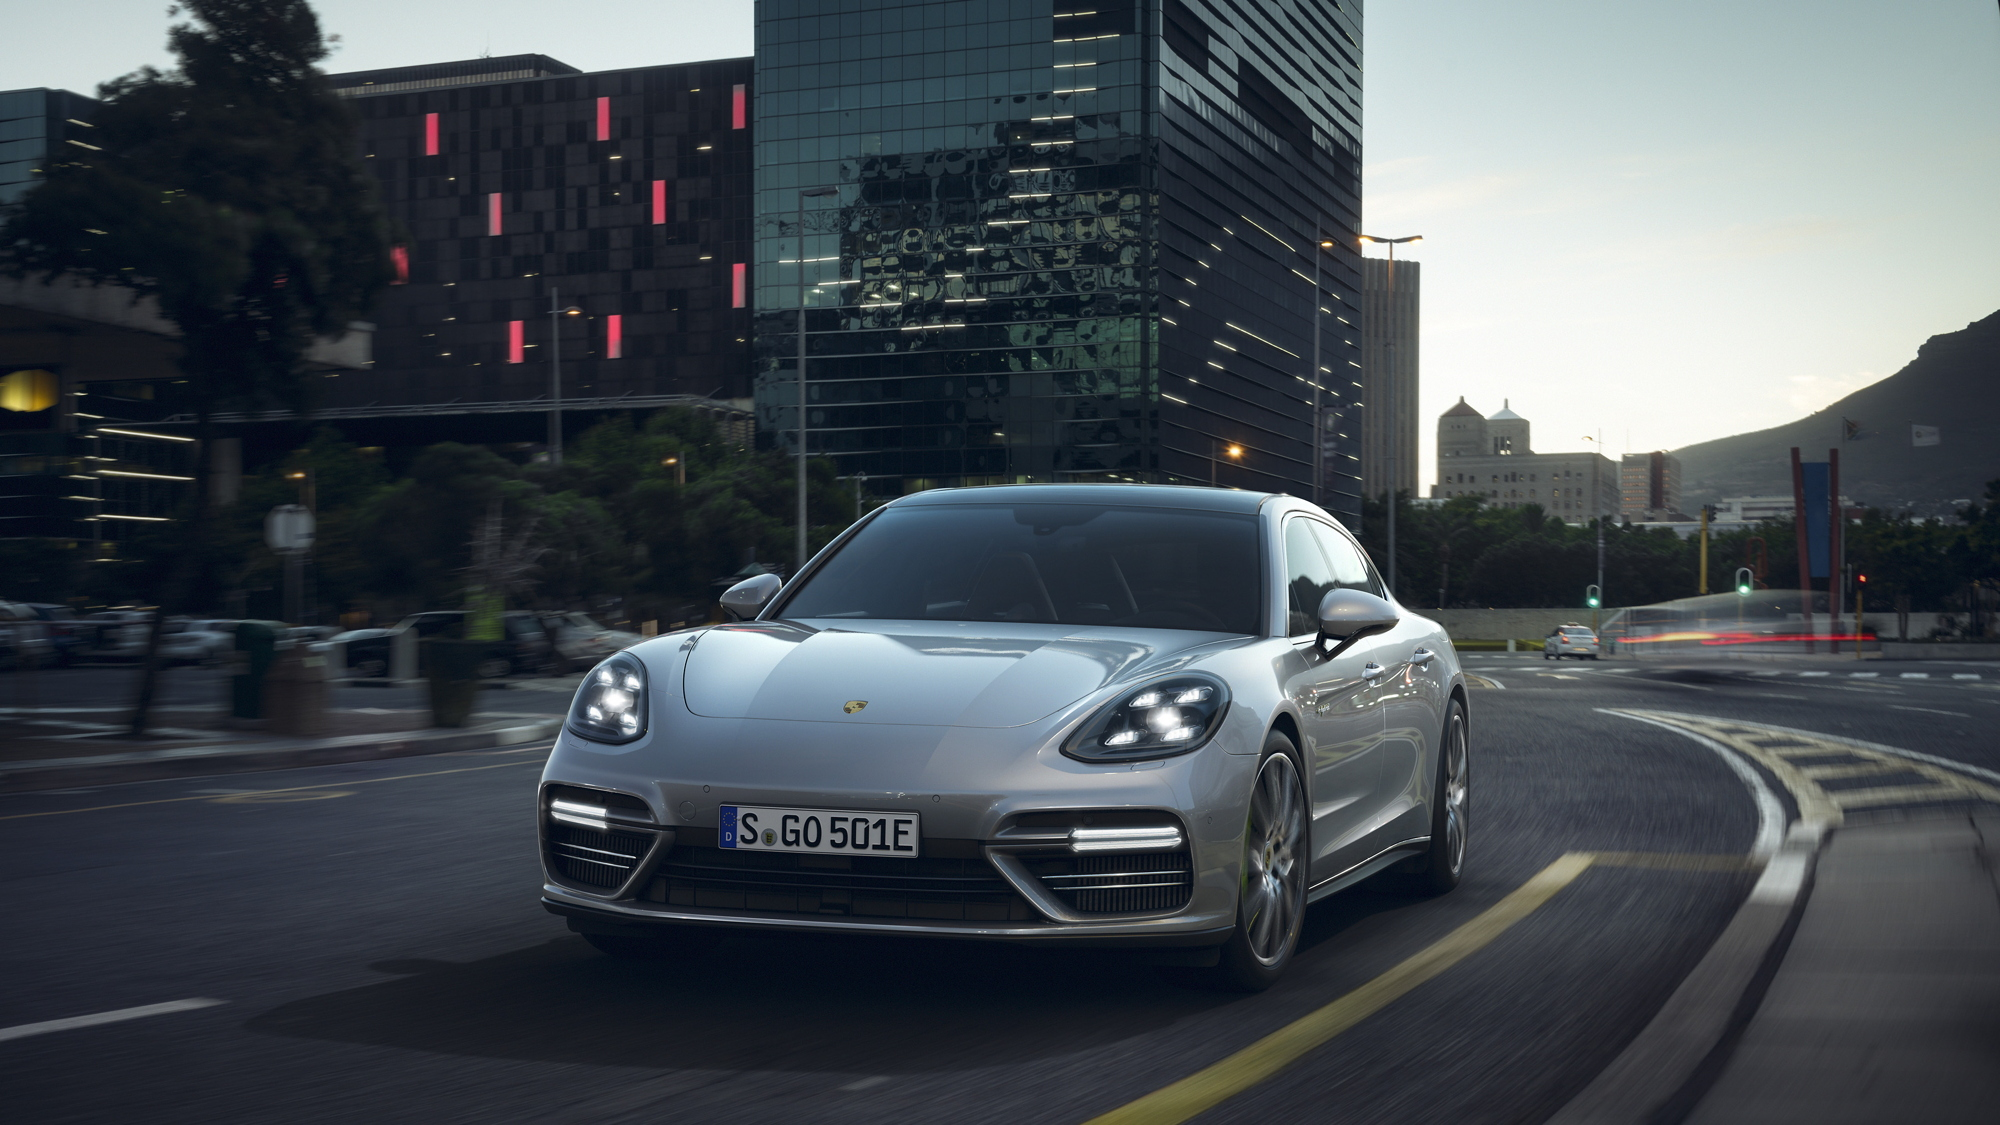 Porsche Panamera Turbo S E-Hybrid Executive front